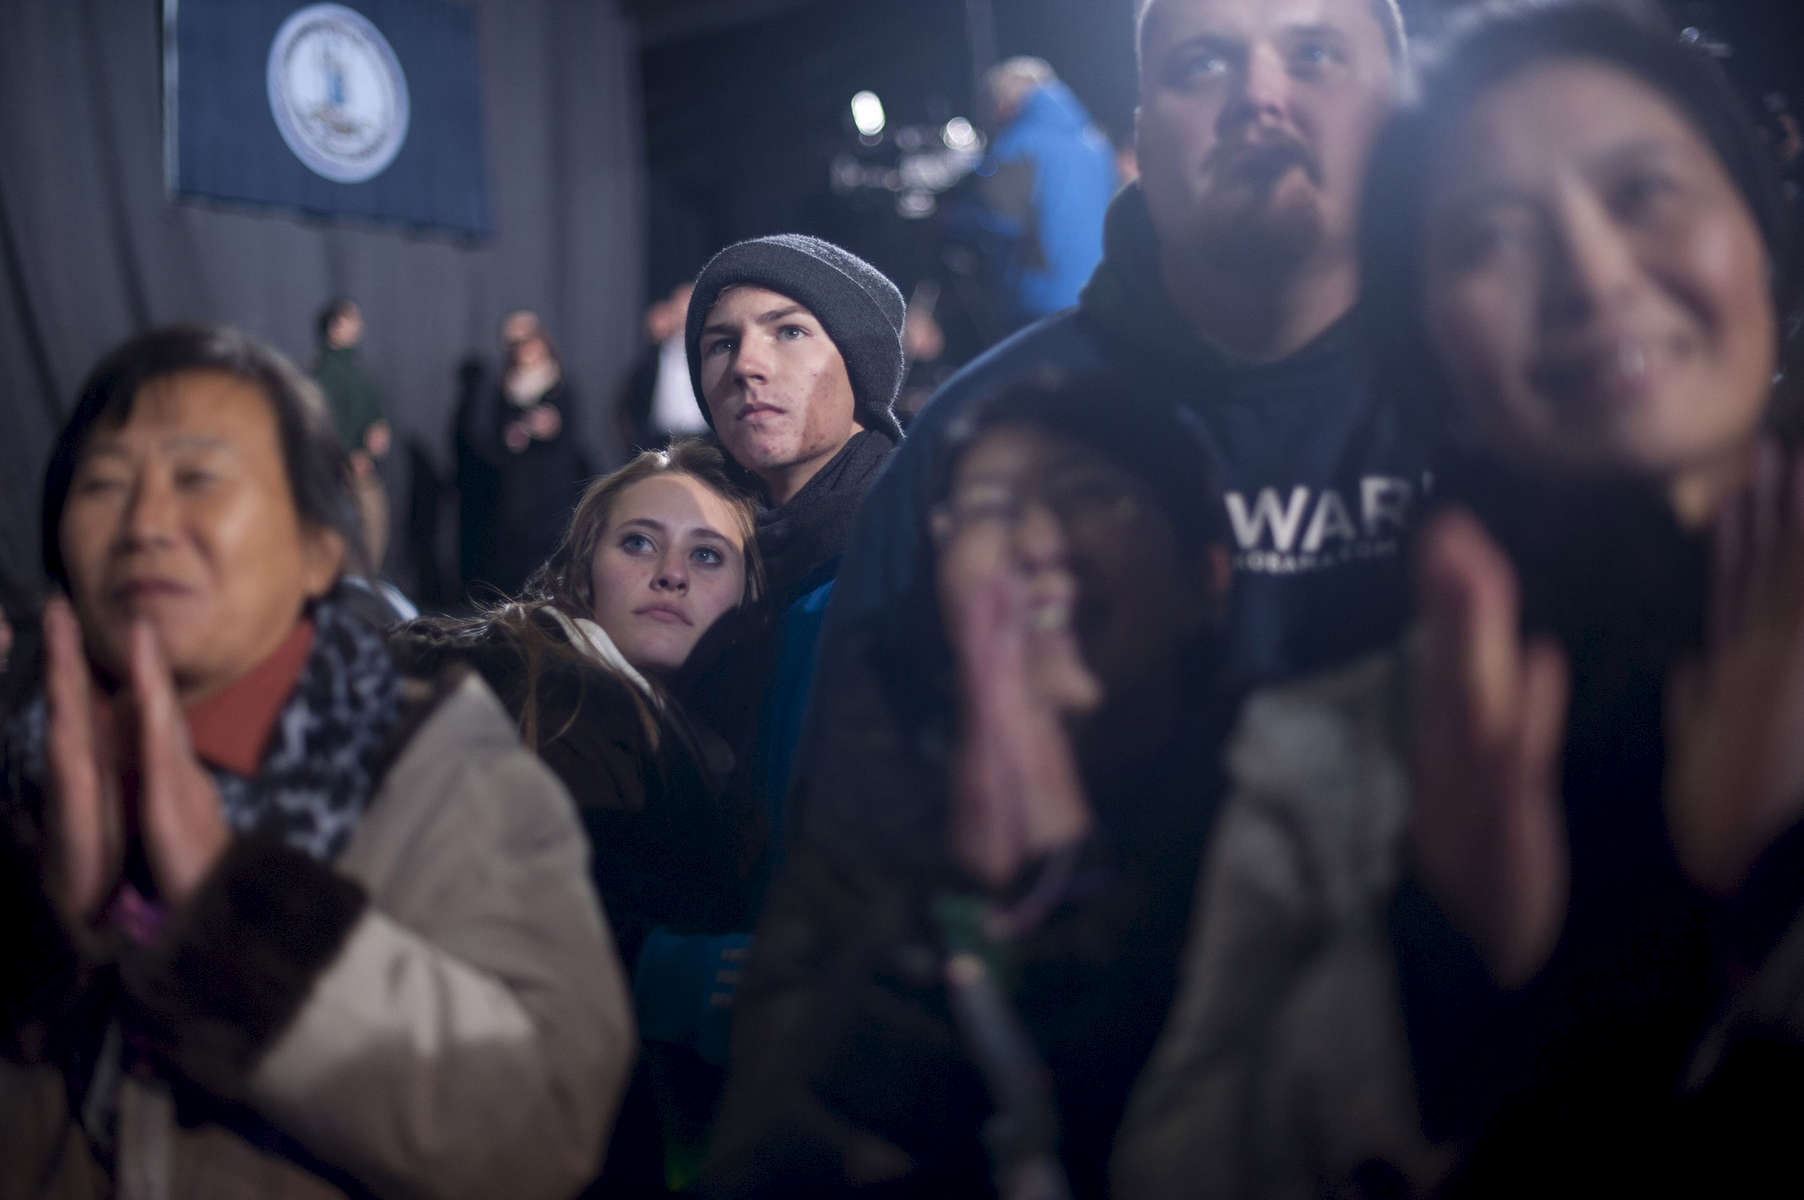 November 3, 2012 - Bristow, VA:  Supporters listen as President Barack Obama speaks at a rally in Bristow, VA a few days before the 2012 election. (Scout Tufankjian for Obama for America/Polaris)